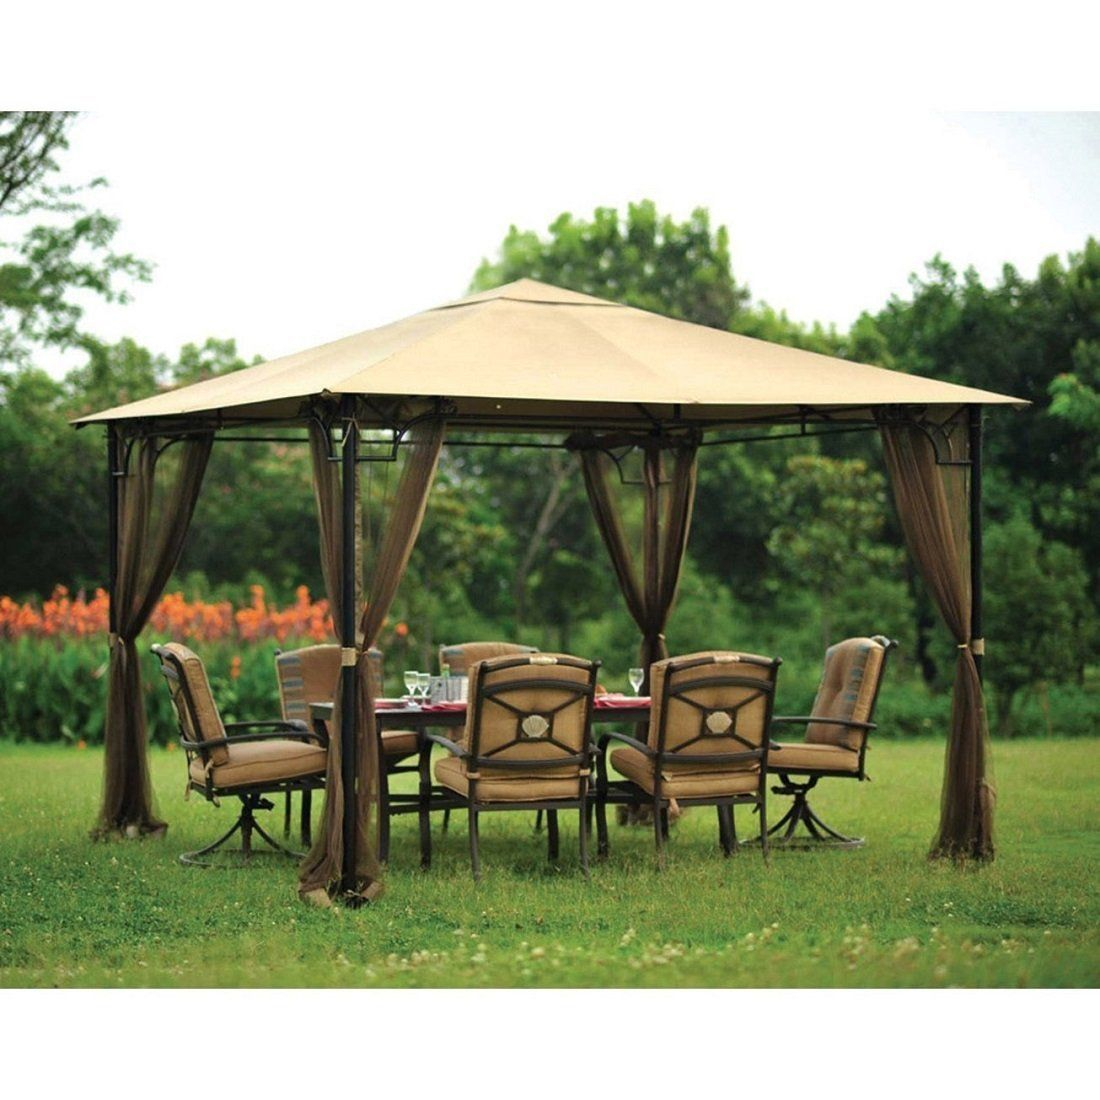 Living Accents x Gazebo Netting (gazebo sold separately) Living Accents Gazebo Mosquito Netting (Netting Only)  sc 1 st  Pinterest & Pop up garden gazebo 4 side walls 3194 p | Pop Up Gazebos ...